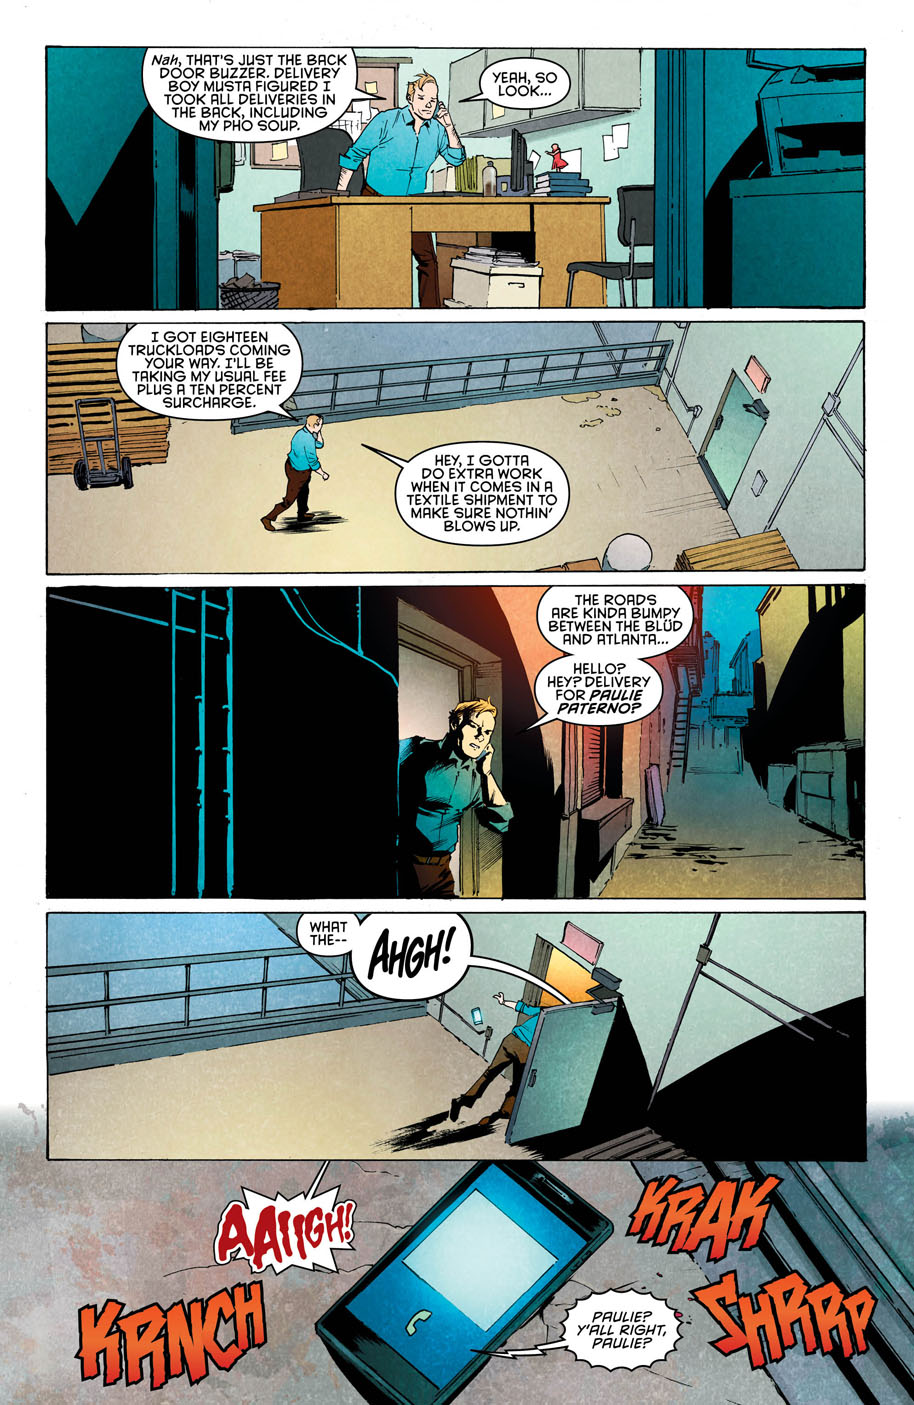 Nightwing 10 page 3